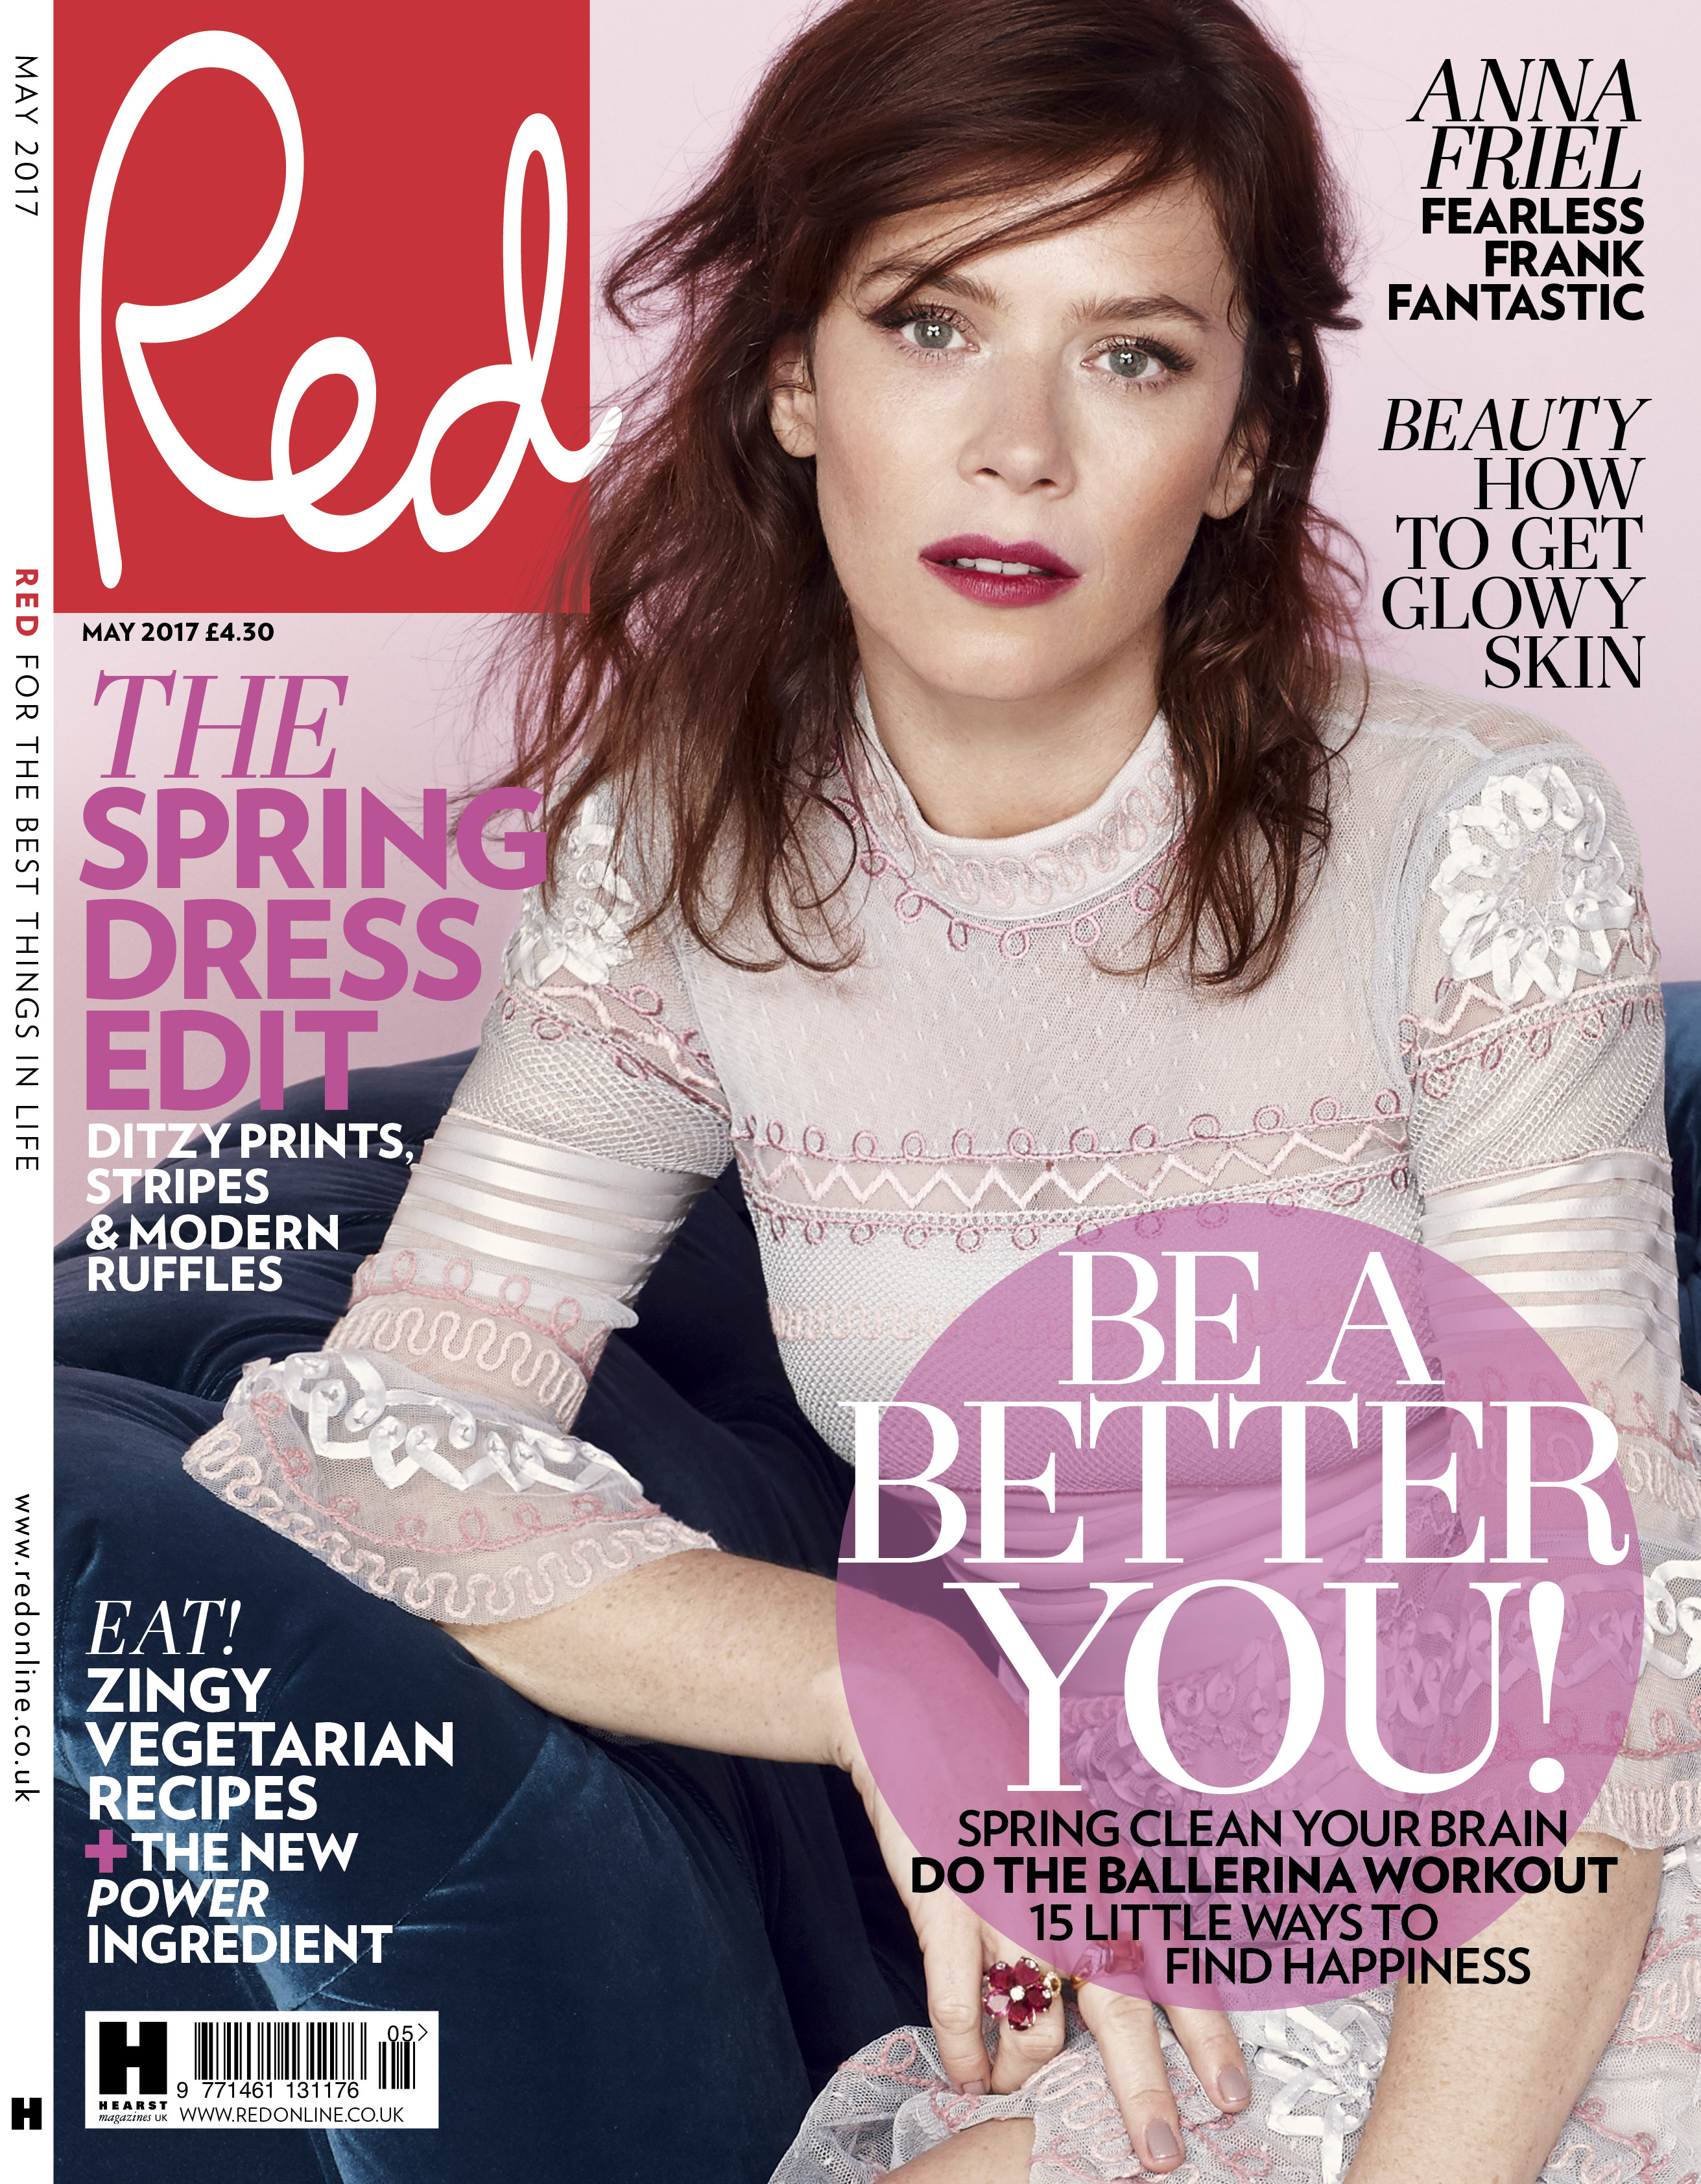 Subscribe to Red today for just £9.99 for 6 issues!